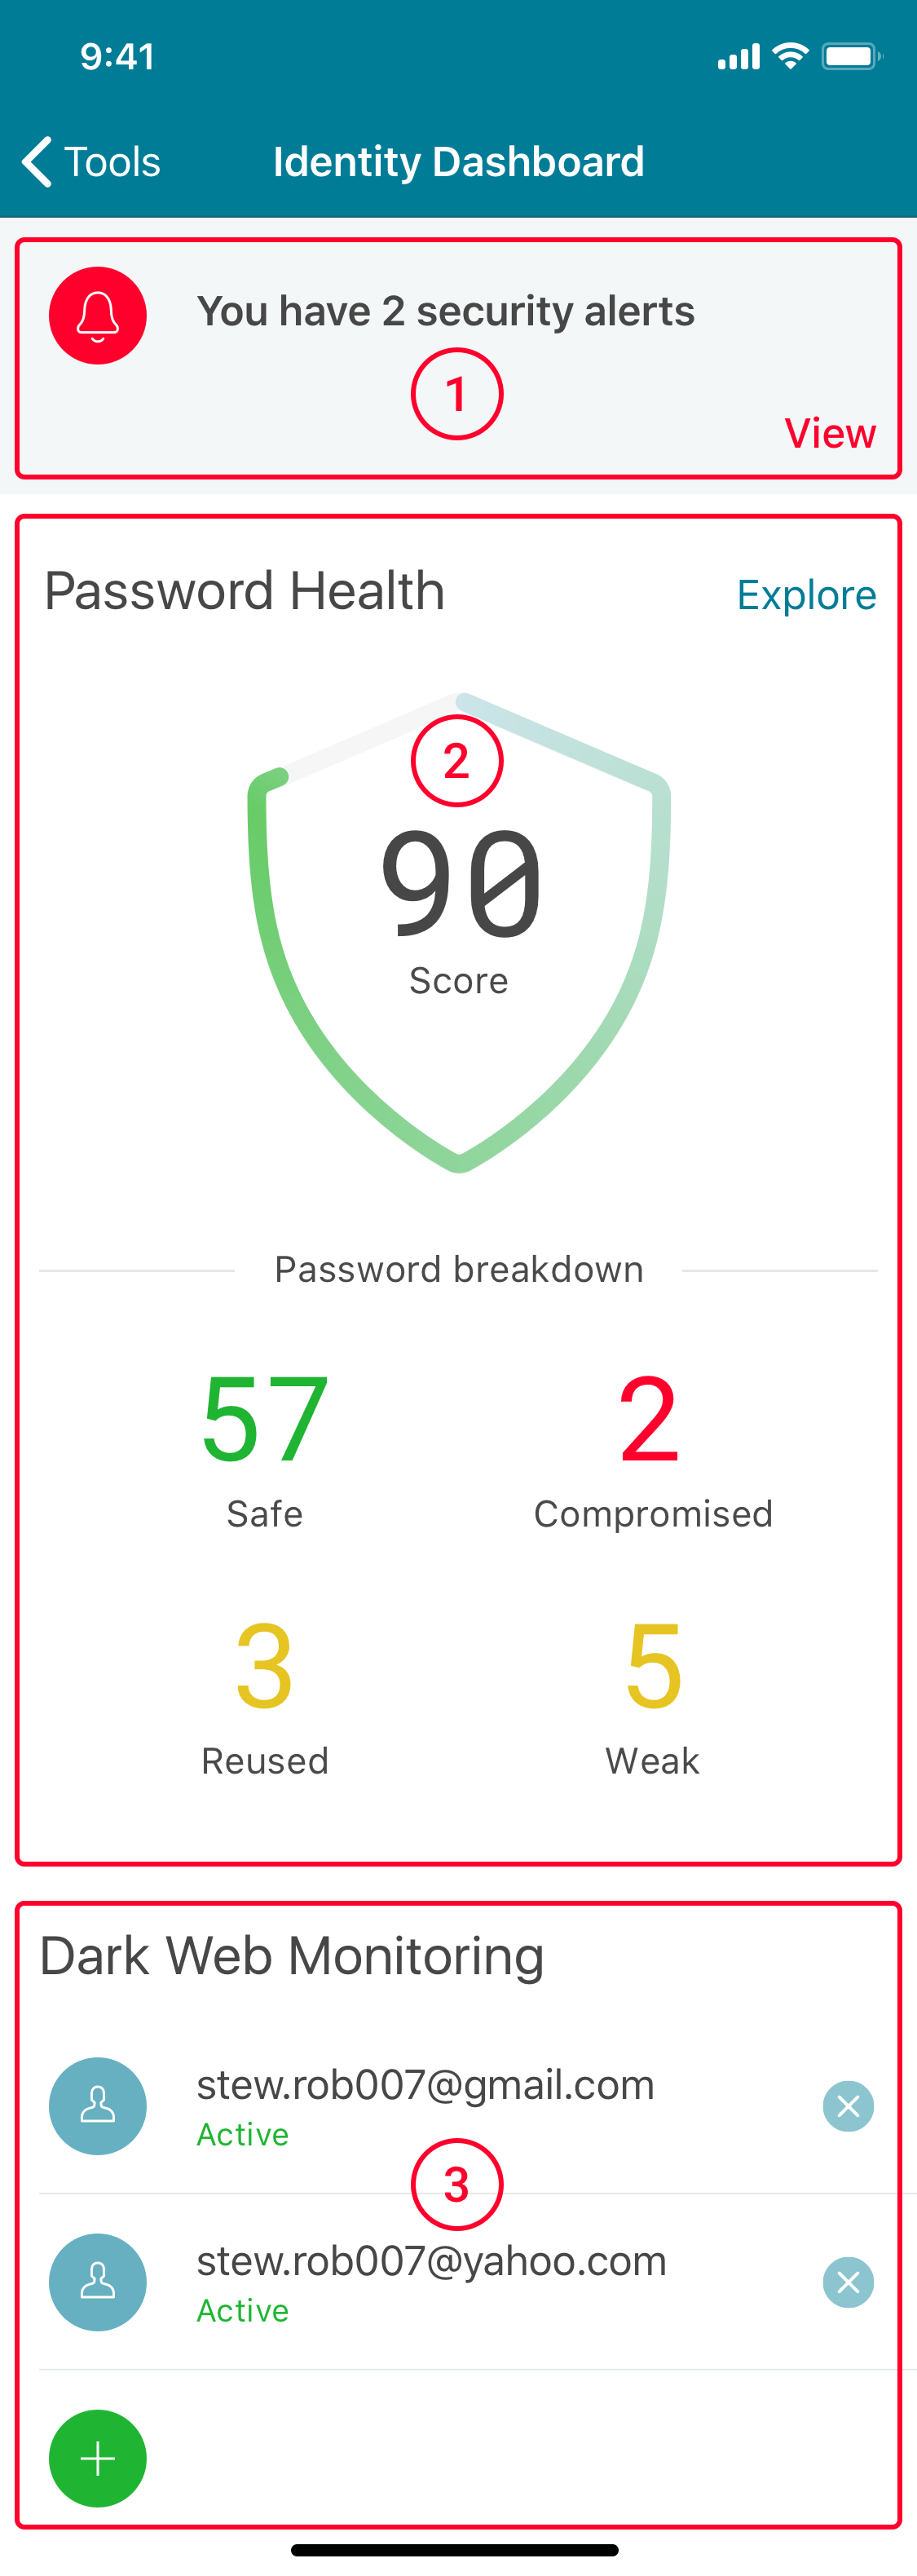 EN_iOS_ID-dashboard_3x.png